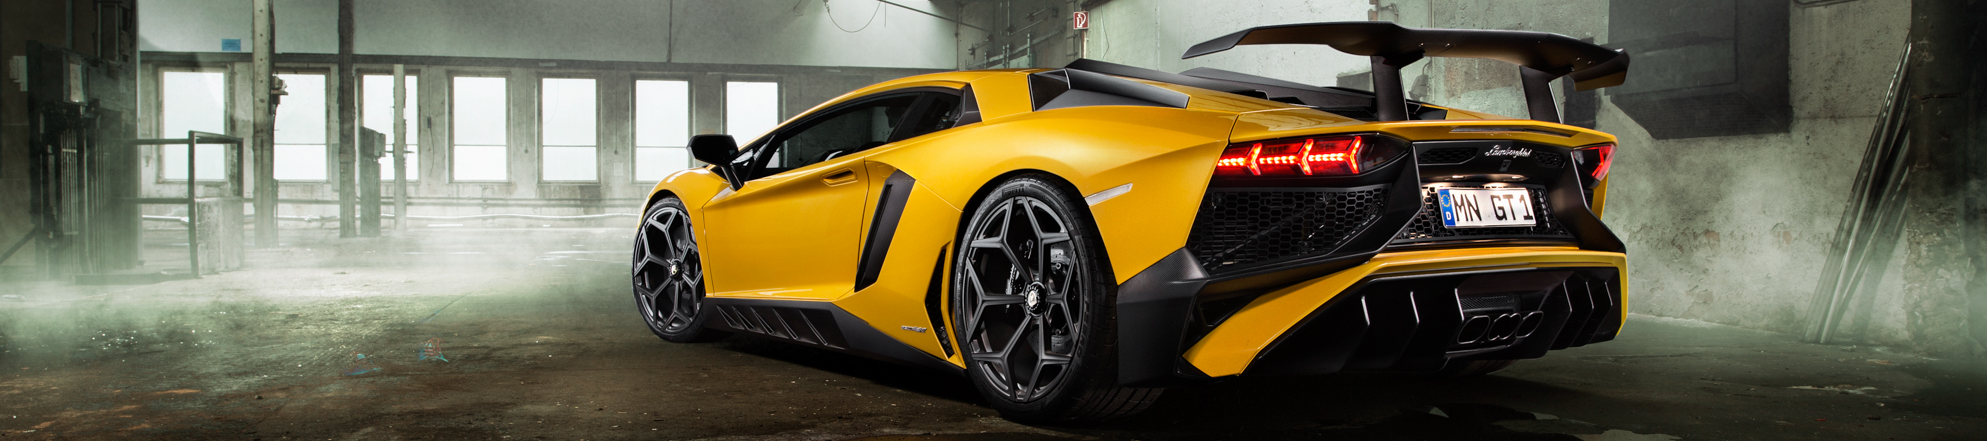 Novitec and Vossen have teamed up to create a new pair of shoes for the Lamborghini Aventador SV. Due to the pure power and performance of the Aventador SV that has been matched with a revolutionary design, Novitec and Vossen set their sights on creating a pair of wheels that were worthy of such a high-performance machine. The NV1 wheel design pays respect to the hard lines and aggressive body styling of the Aventador SV while providing a subtle balance that helps to smooth out the hard edges of the Aventador.